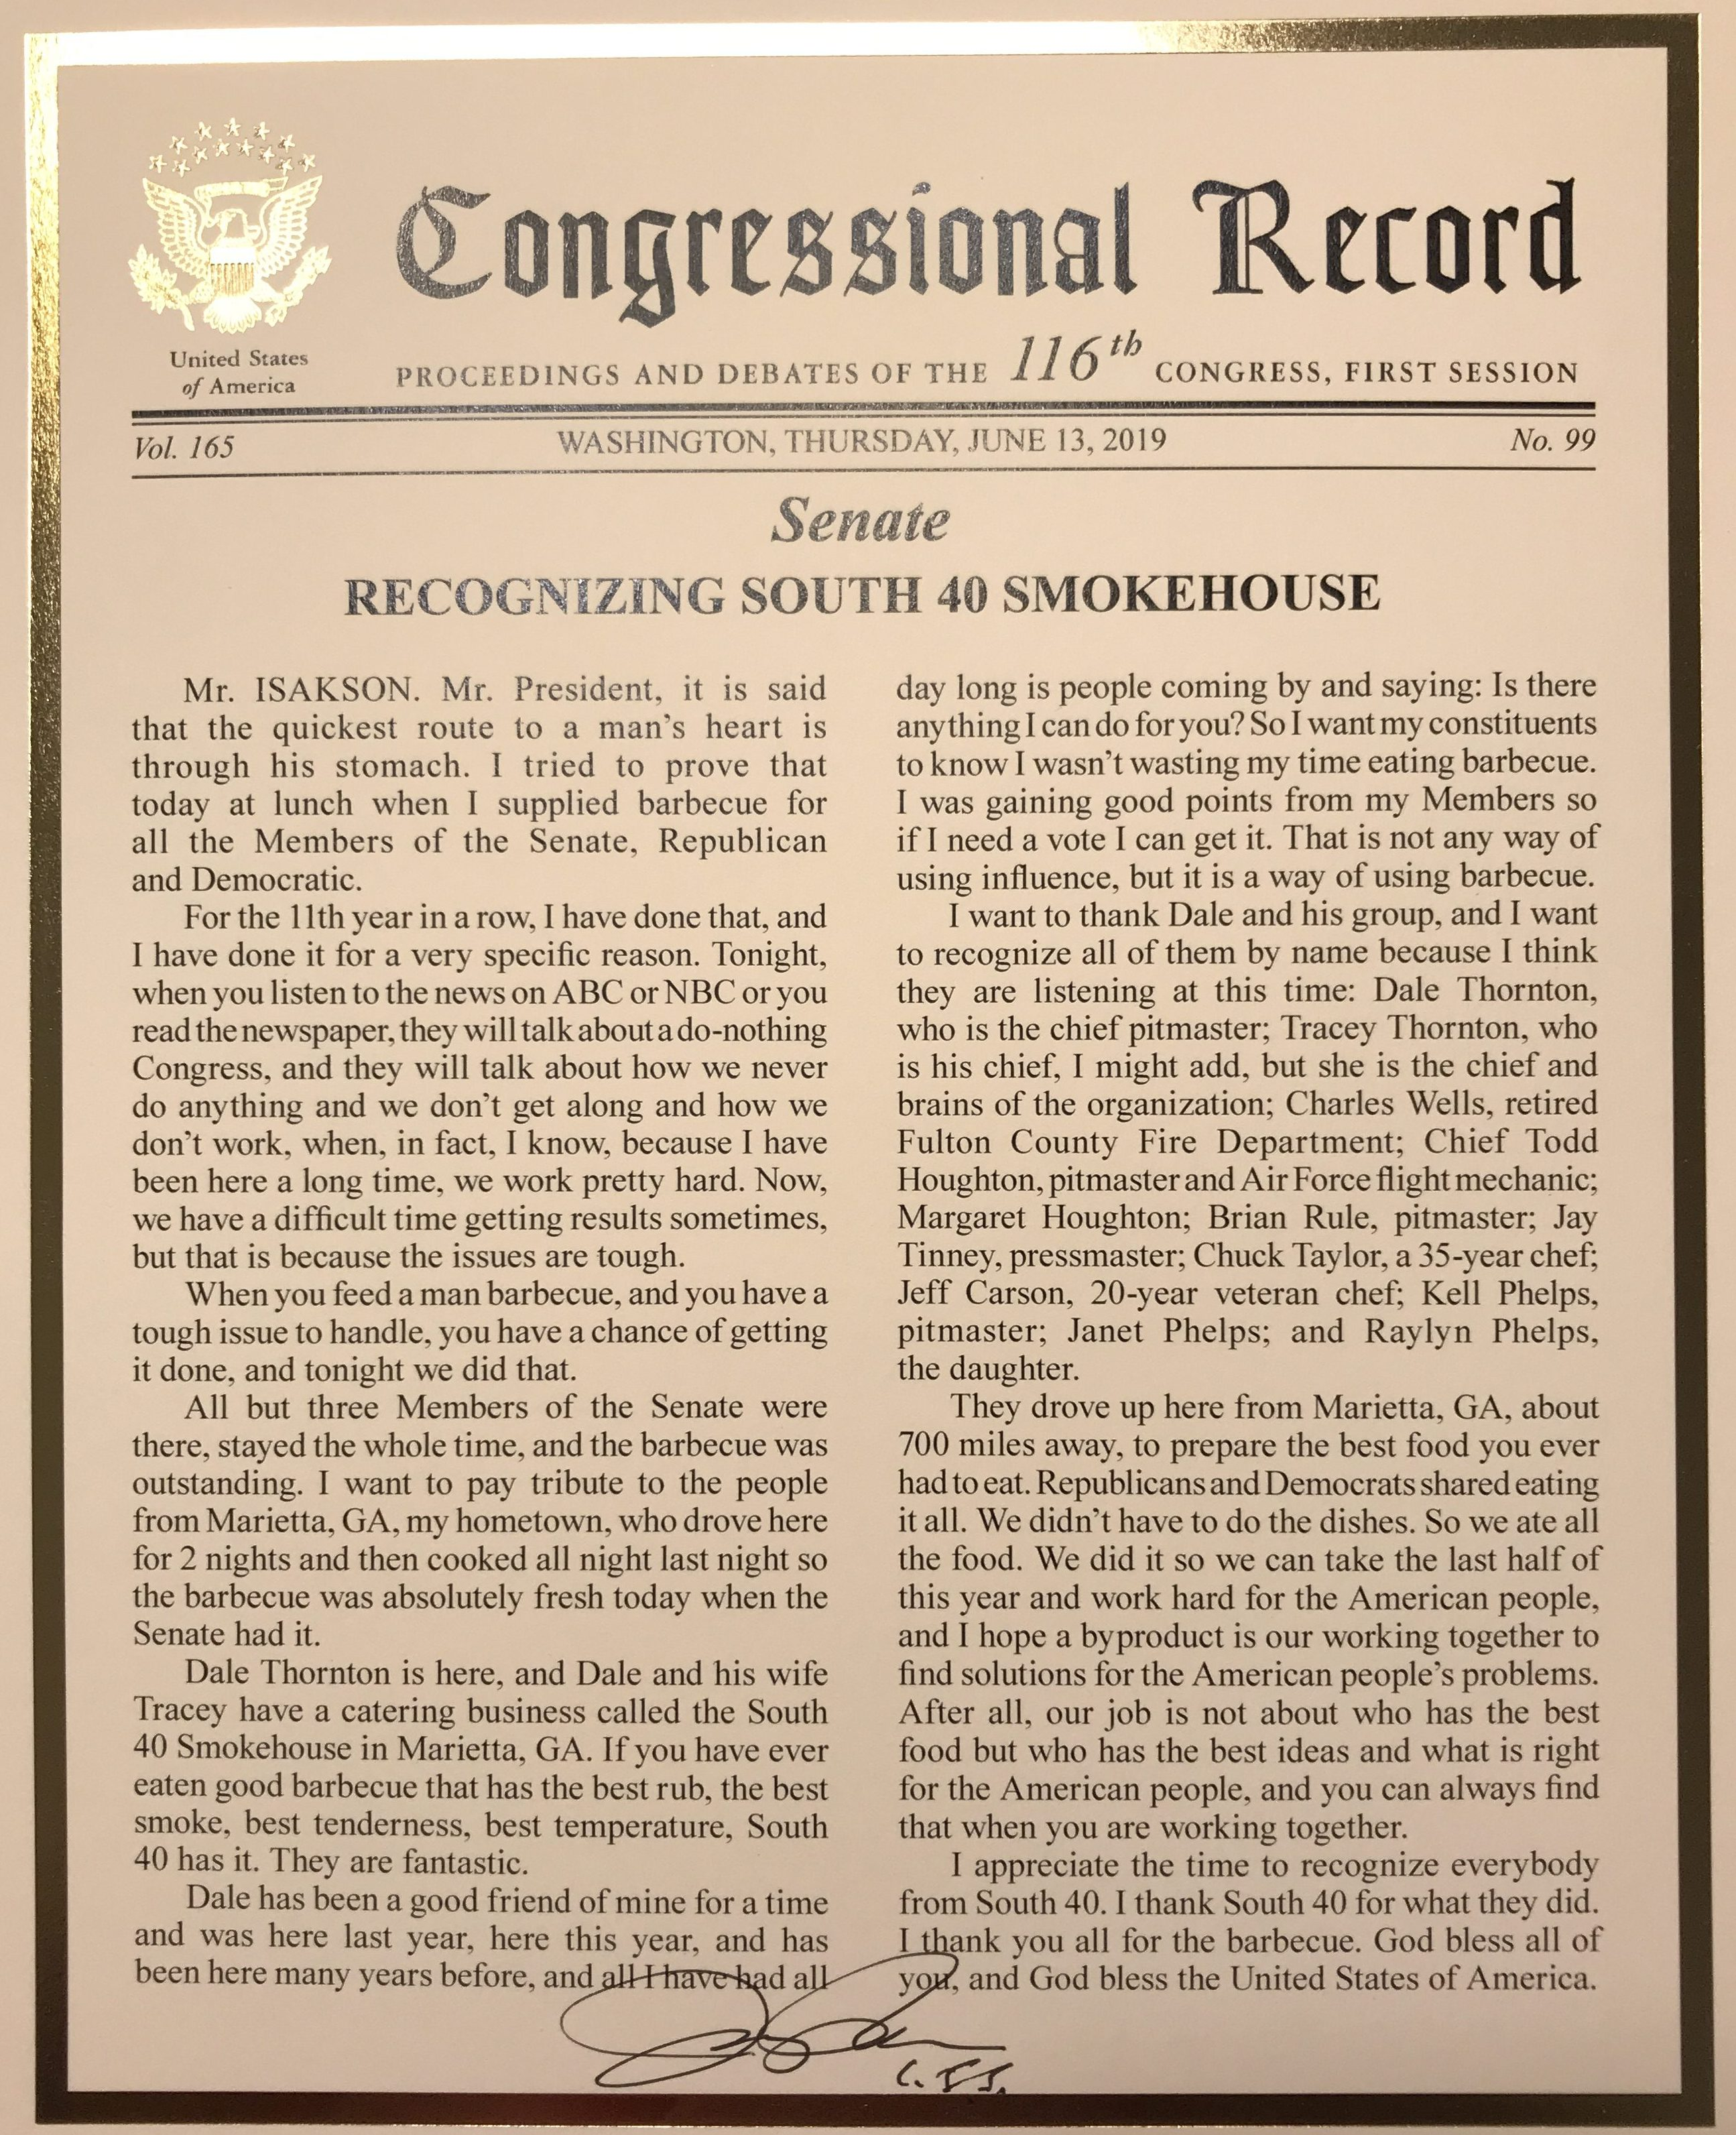 Congressional Record Recognizing South 40 Smokehouse